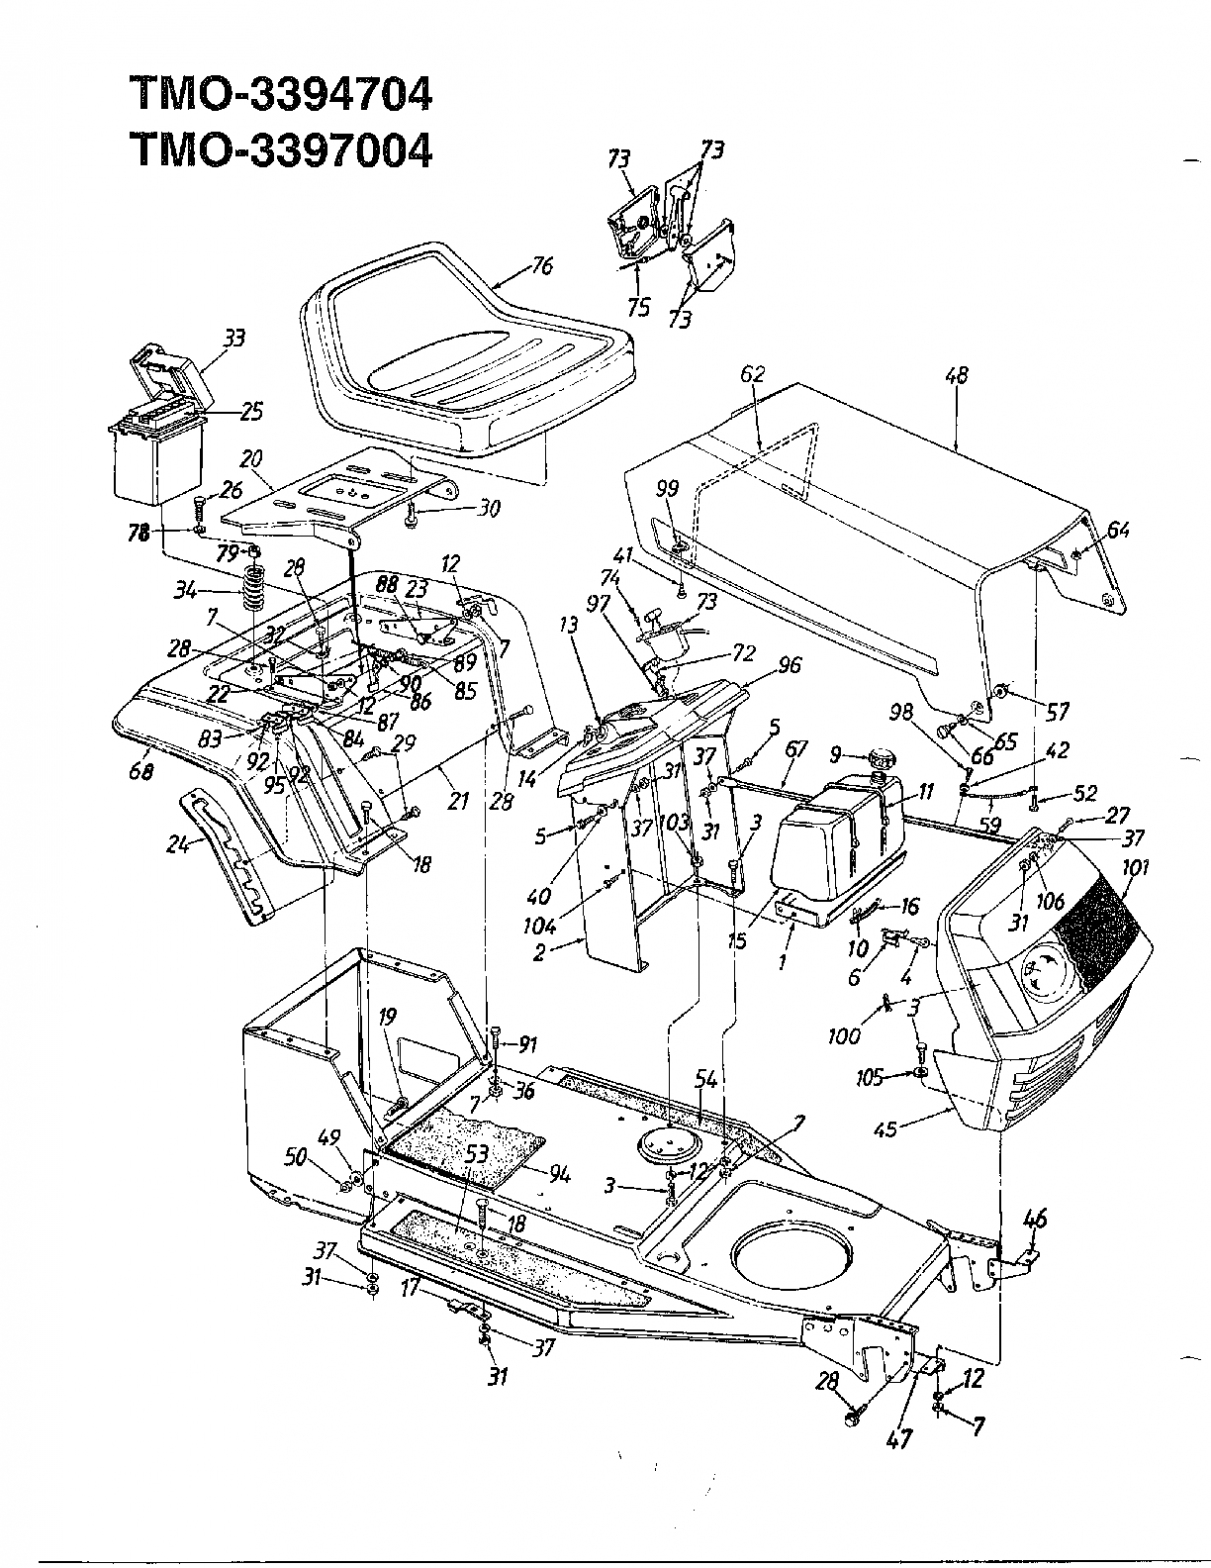 hight resolution of 1211x1568 murry lawn mower parts diagram mtd lawnflite wiring diagram riding lawn mower drawing